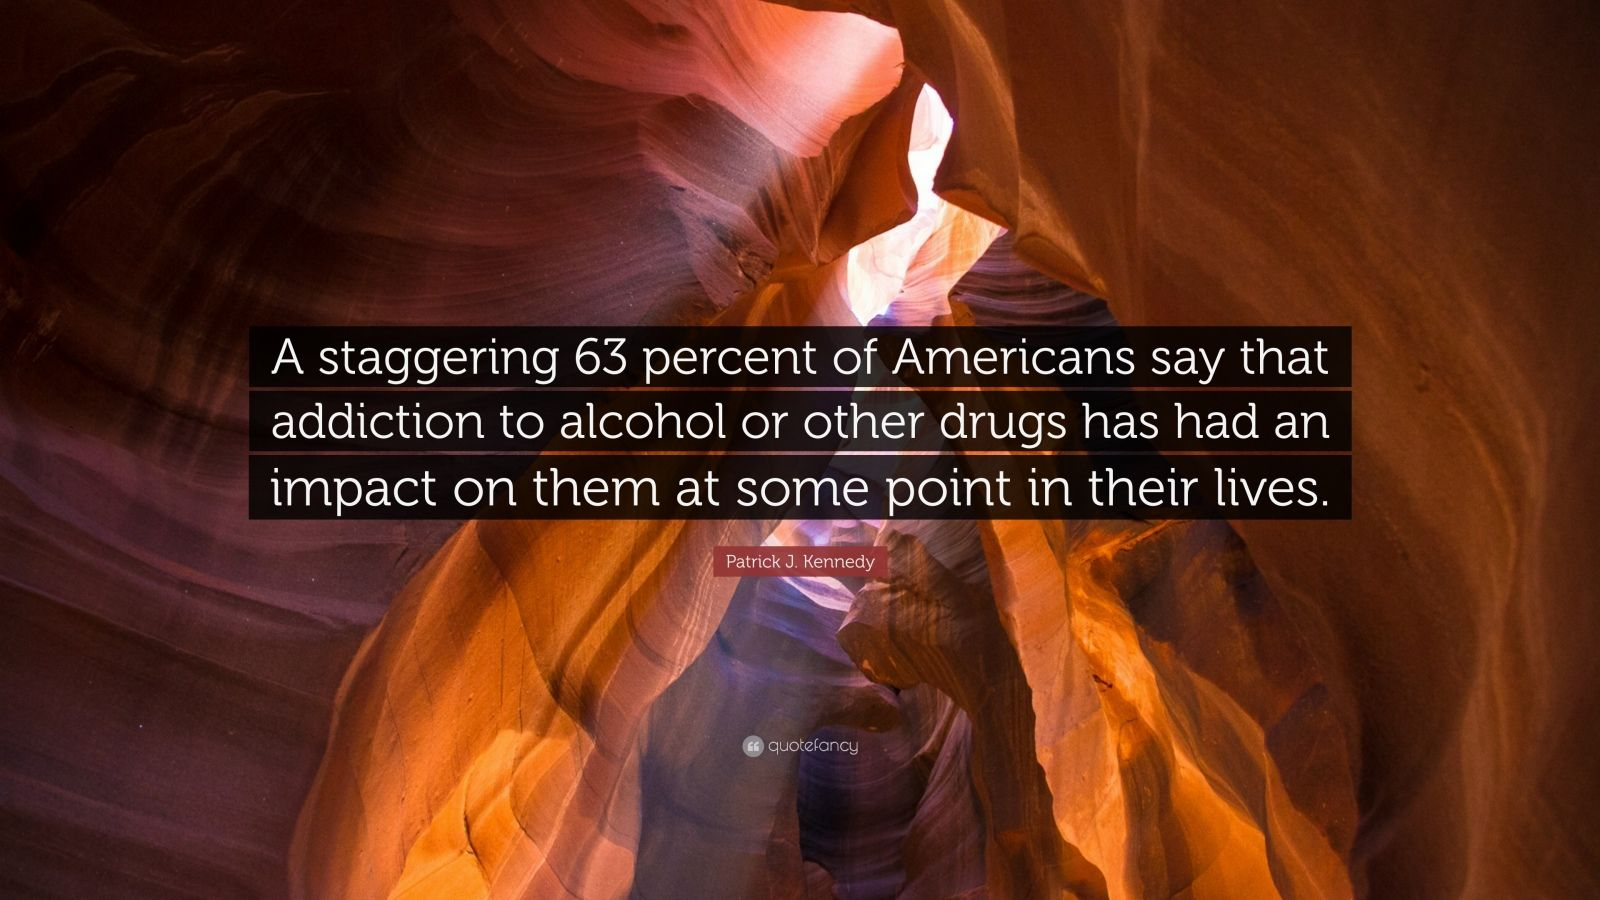 "Patrick J. Kennedy Quote: ""A staggering 63 percent of Americans say that addiction to alcohol or other drugs has had an impact on them at some point in their lives."""